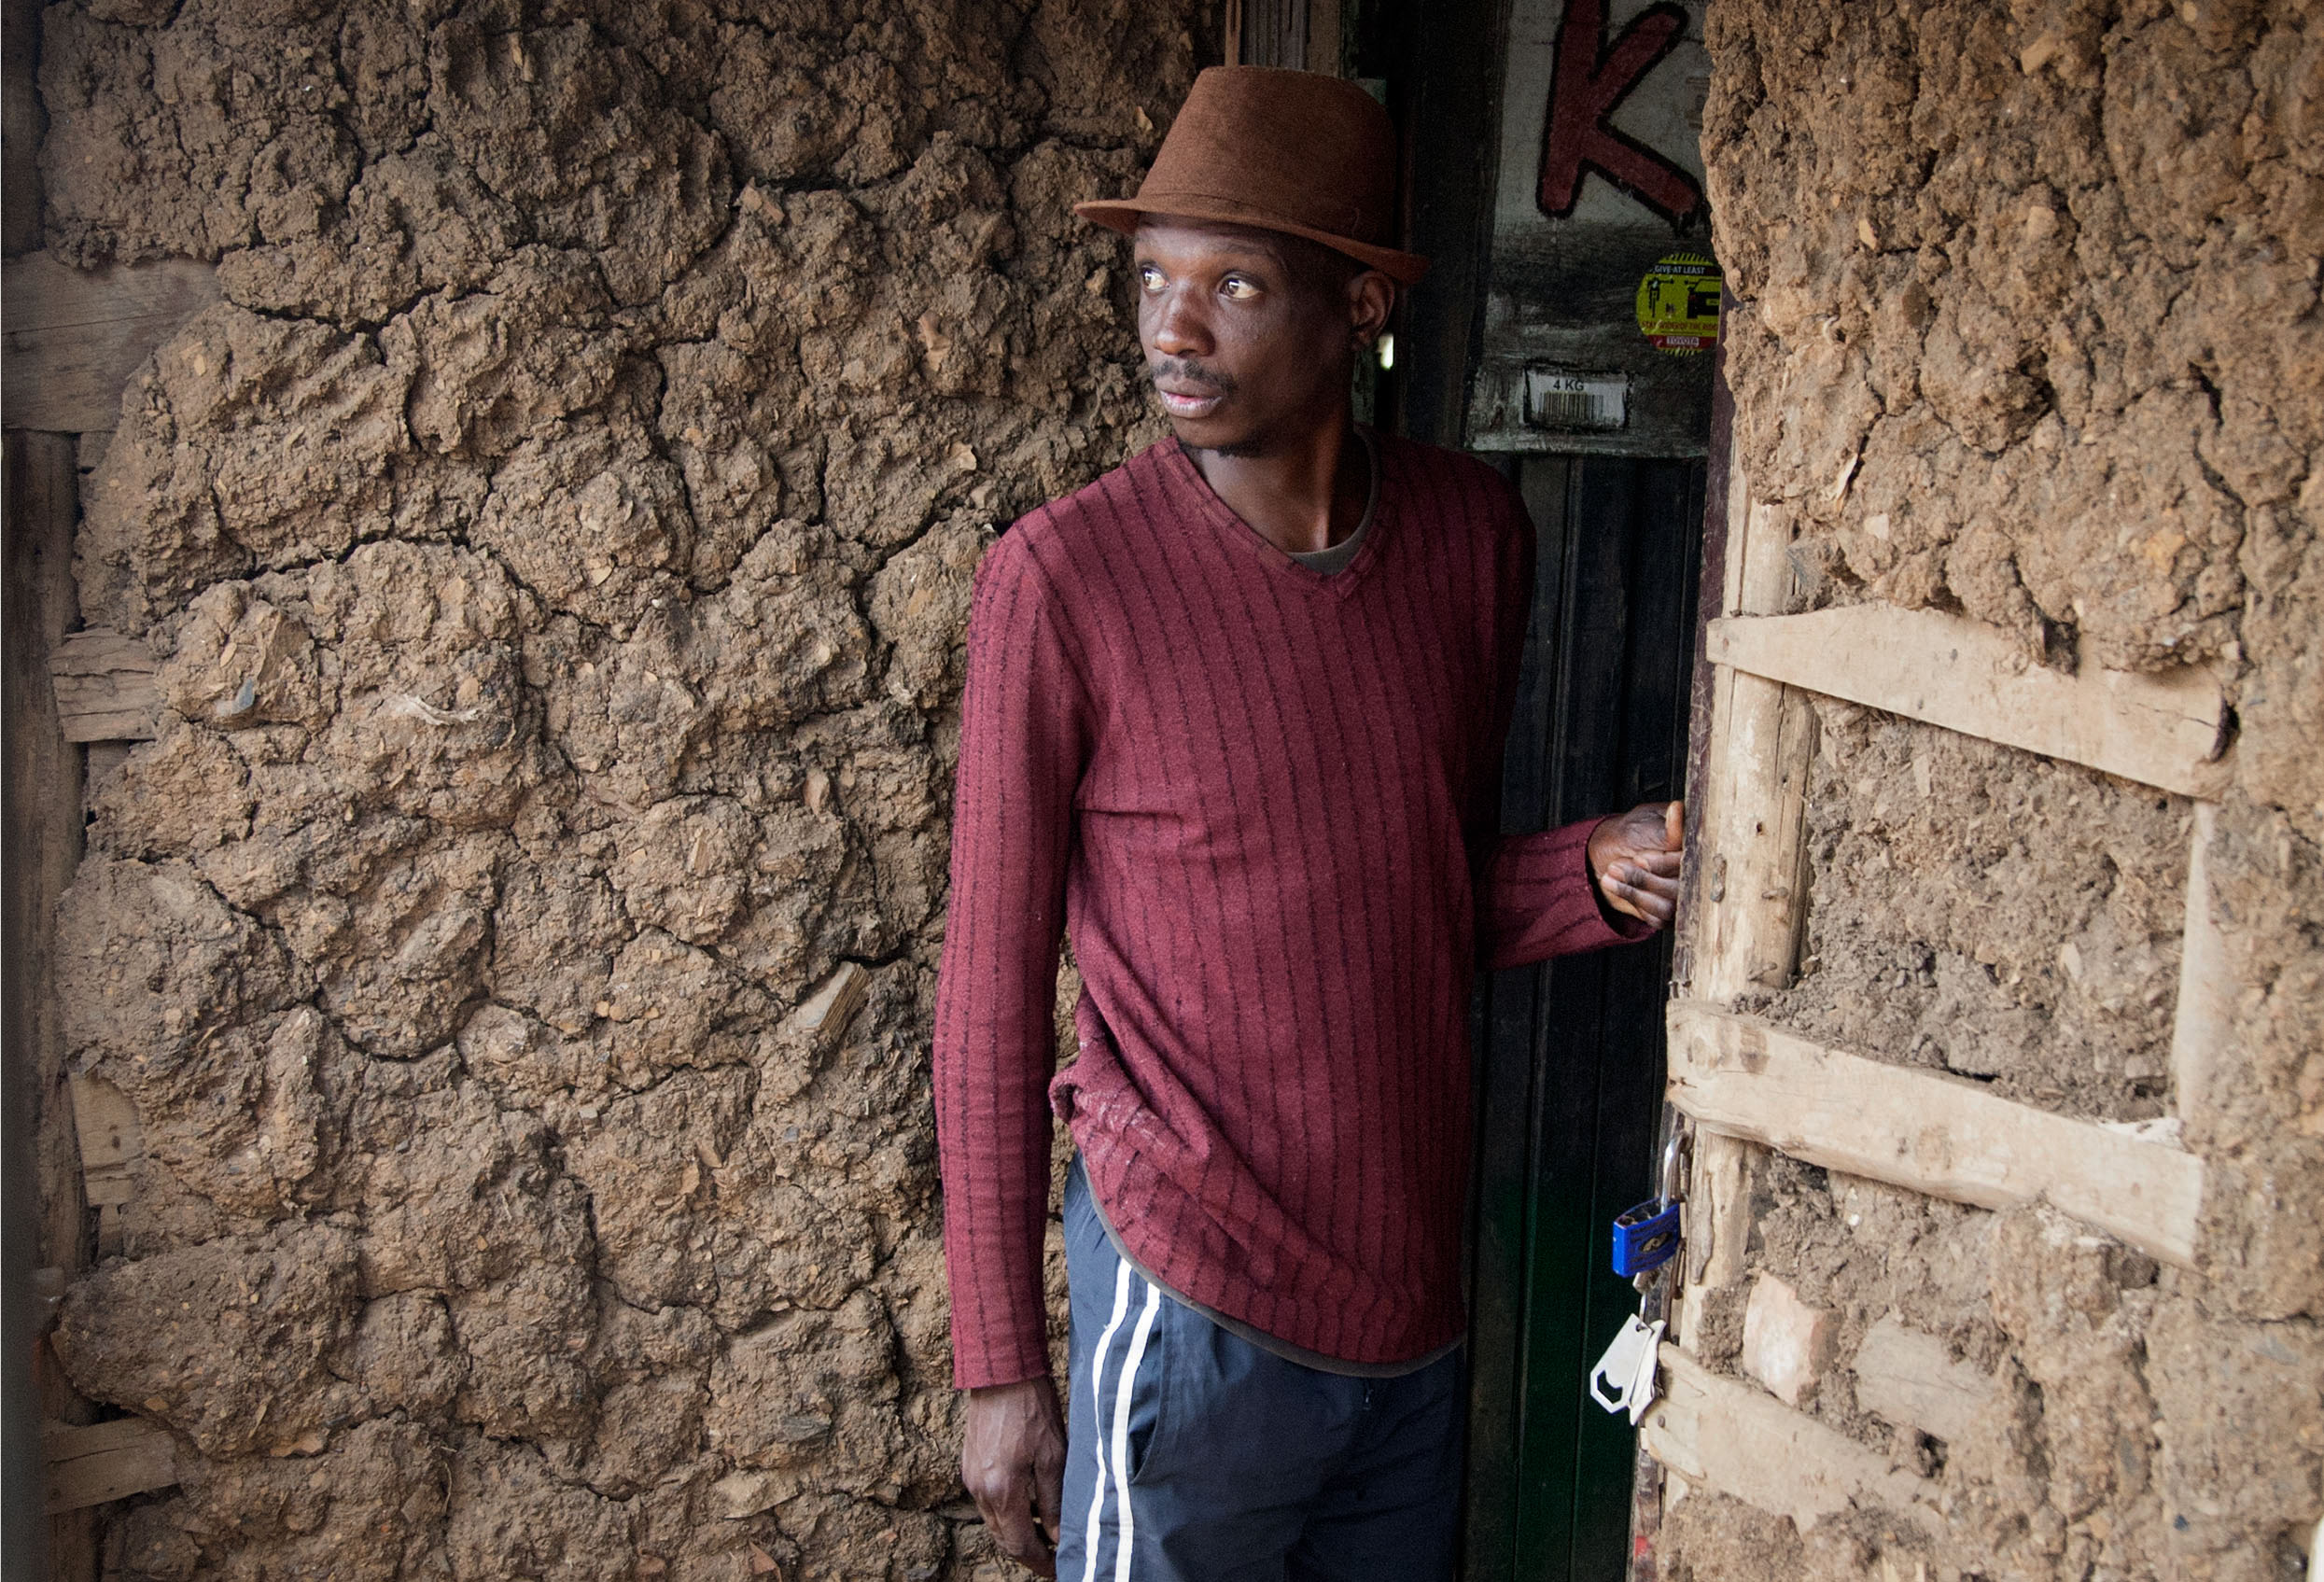 16 November 2019: Sifiso Mdletshe, who lives in Tommy Property shack settlement, says his brother is the local councillor for Ward 53 but has not come to his aid.